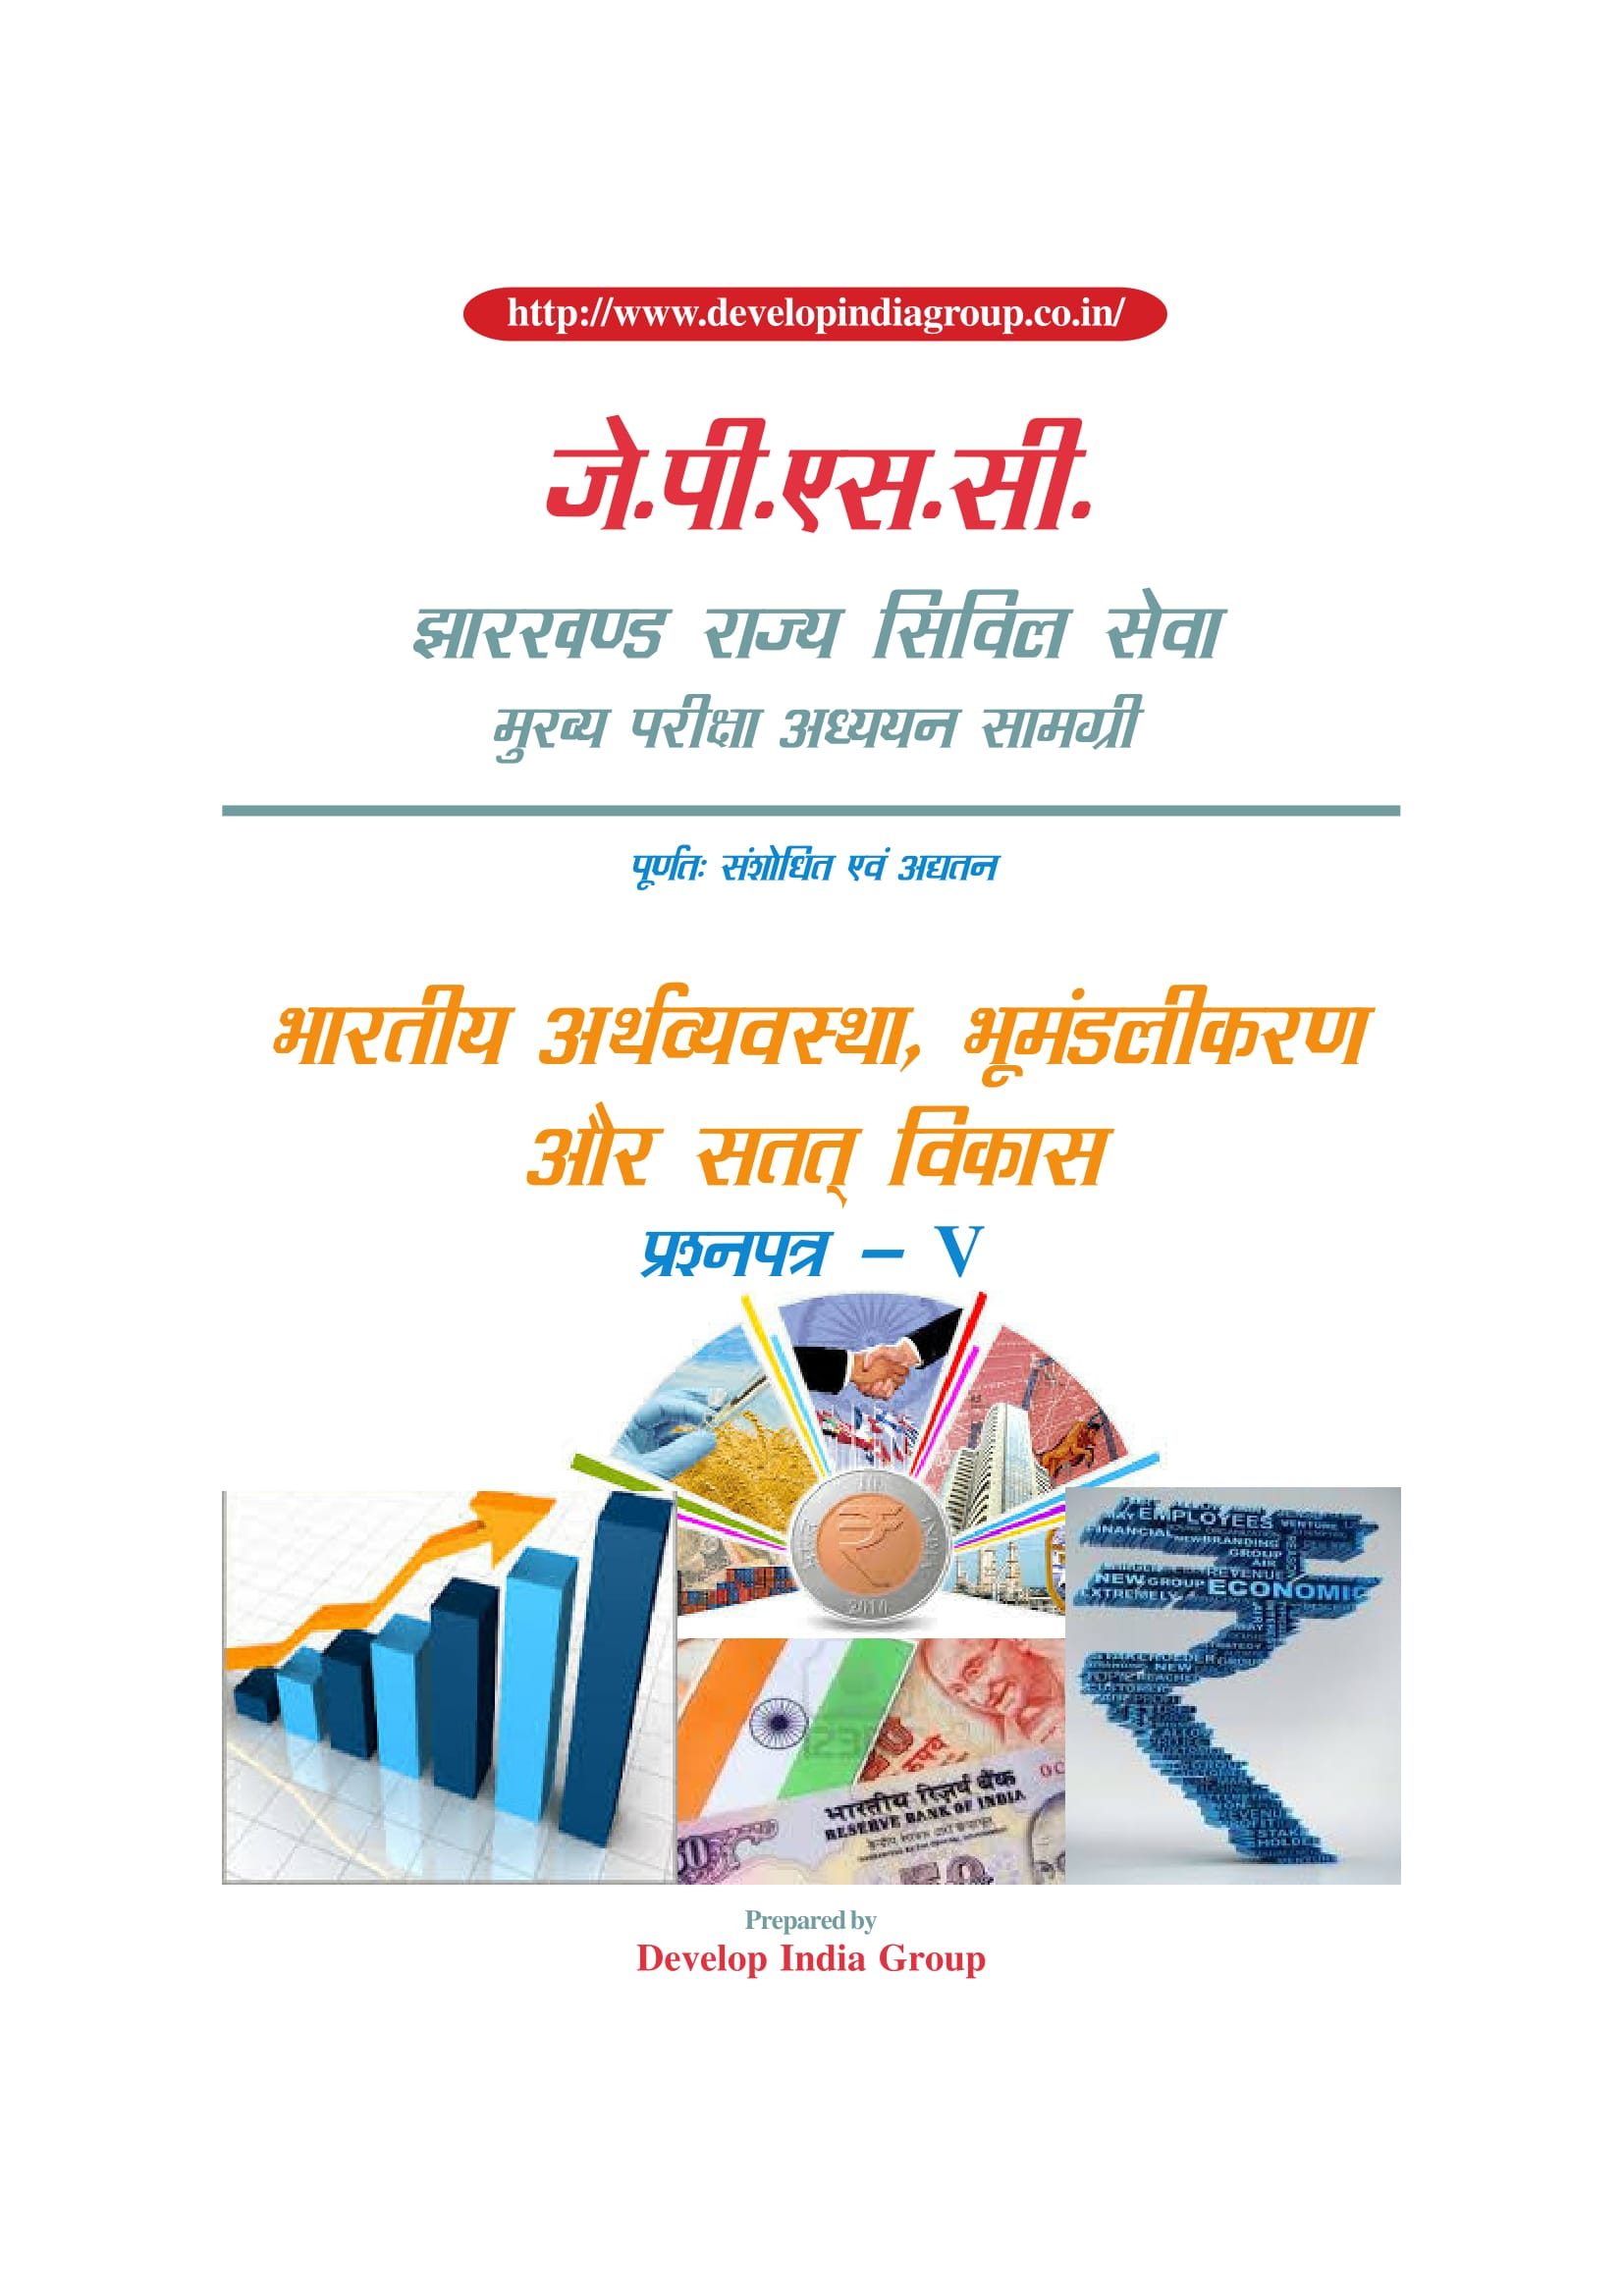 6th JPSC Revised Mains Exam Complete Study Notes Available